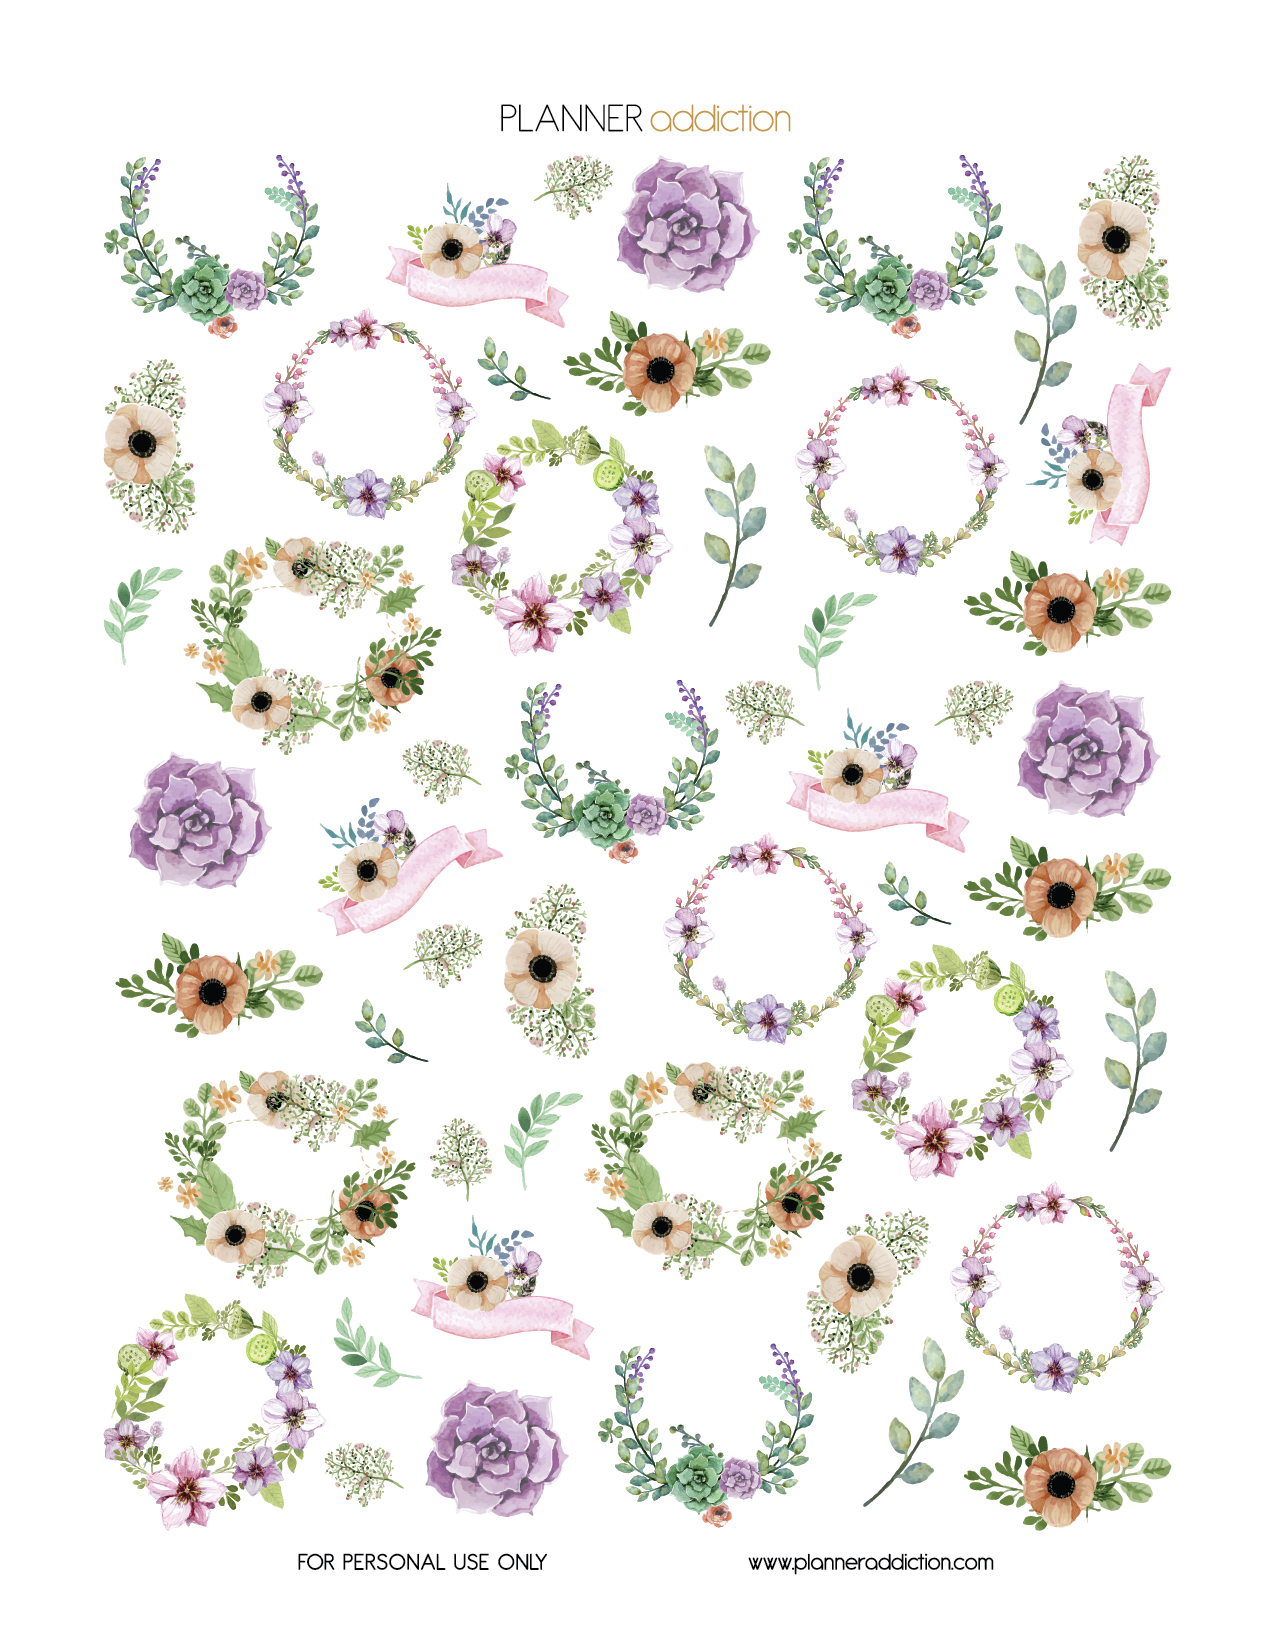 watercolor floral (planner addiction) | planner ideas | pinterest